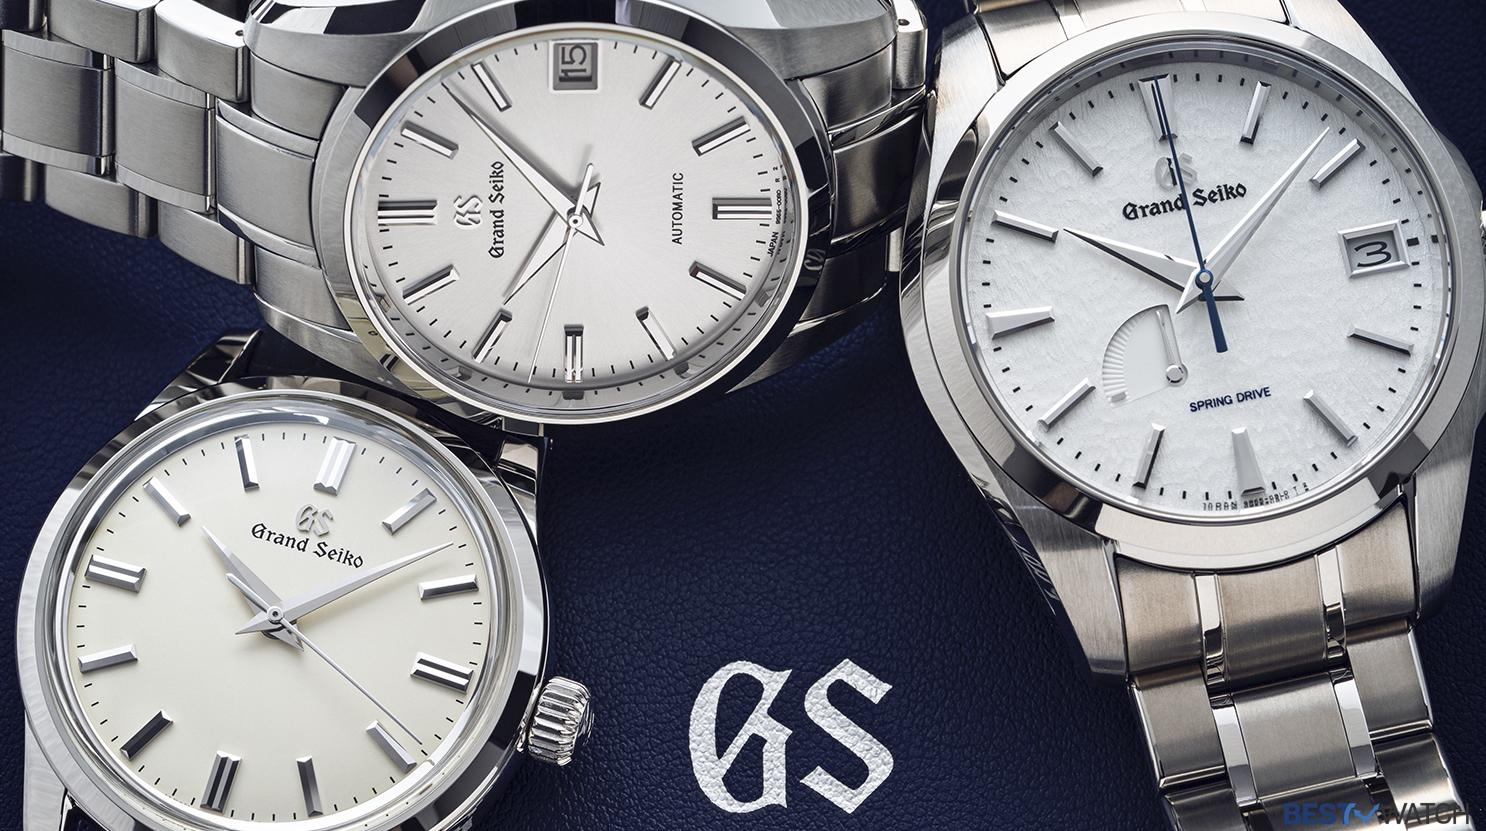 10 Best Watches From Grand Seiko For Every Lifestyle